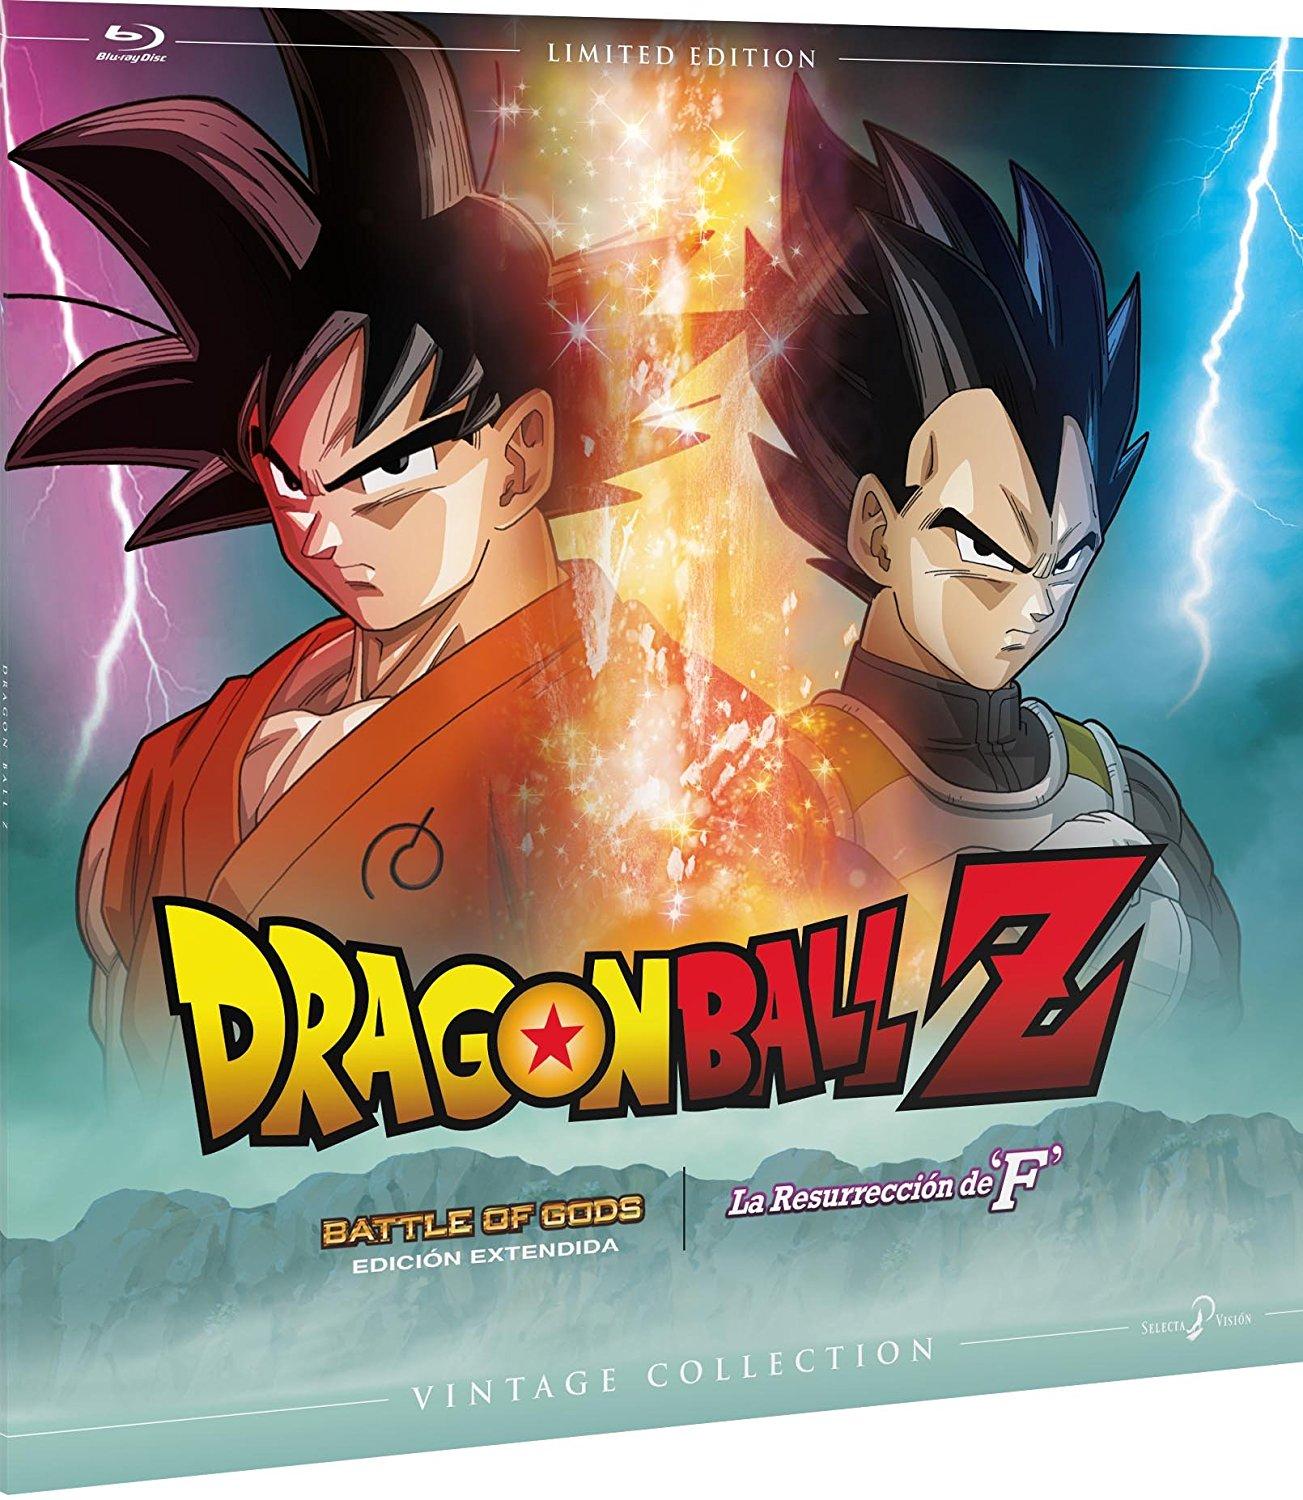 Dragon Ball Z: Battle of Gods EE + Drabon Ball Z: La Resurrección de F (Edición Vintage)